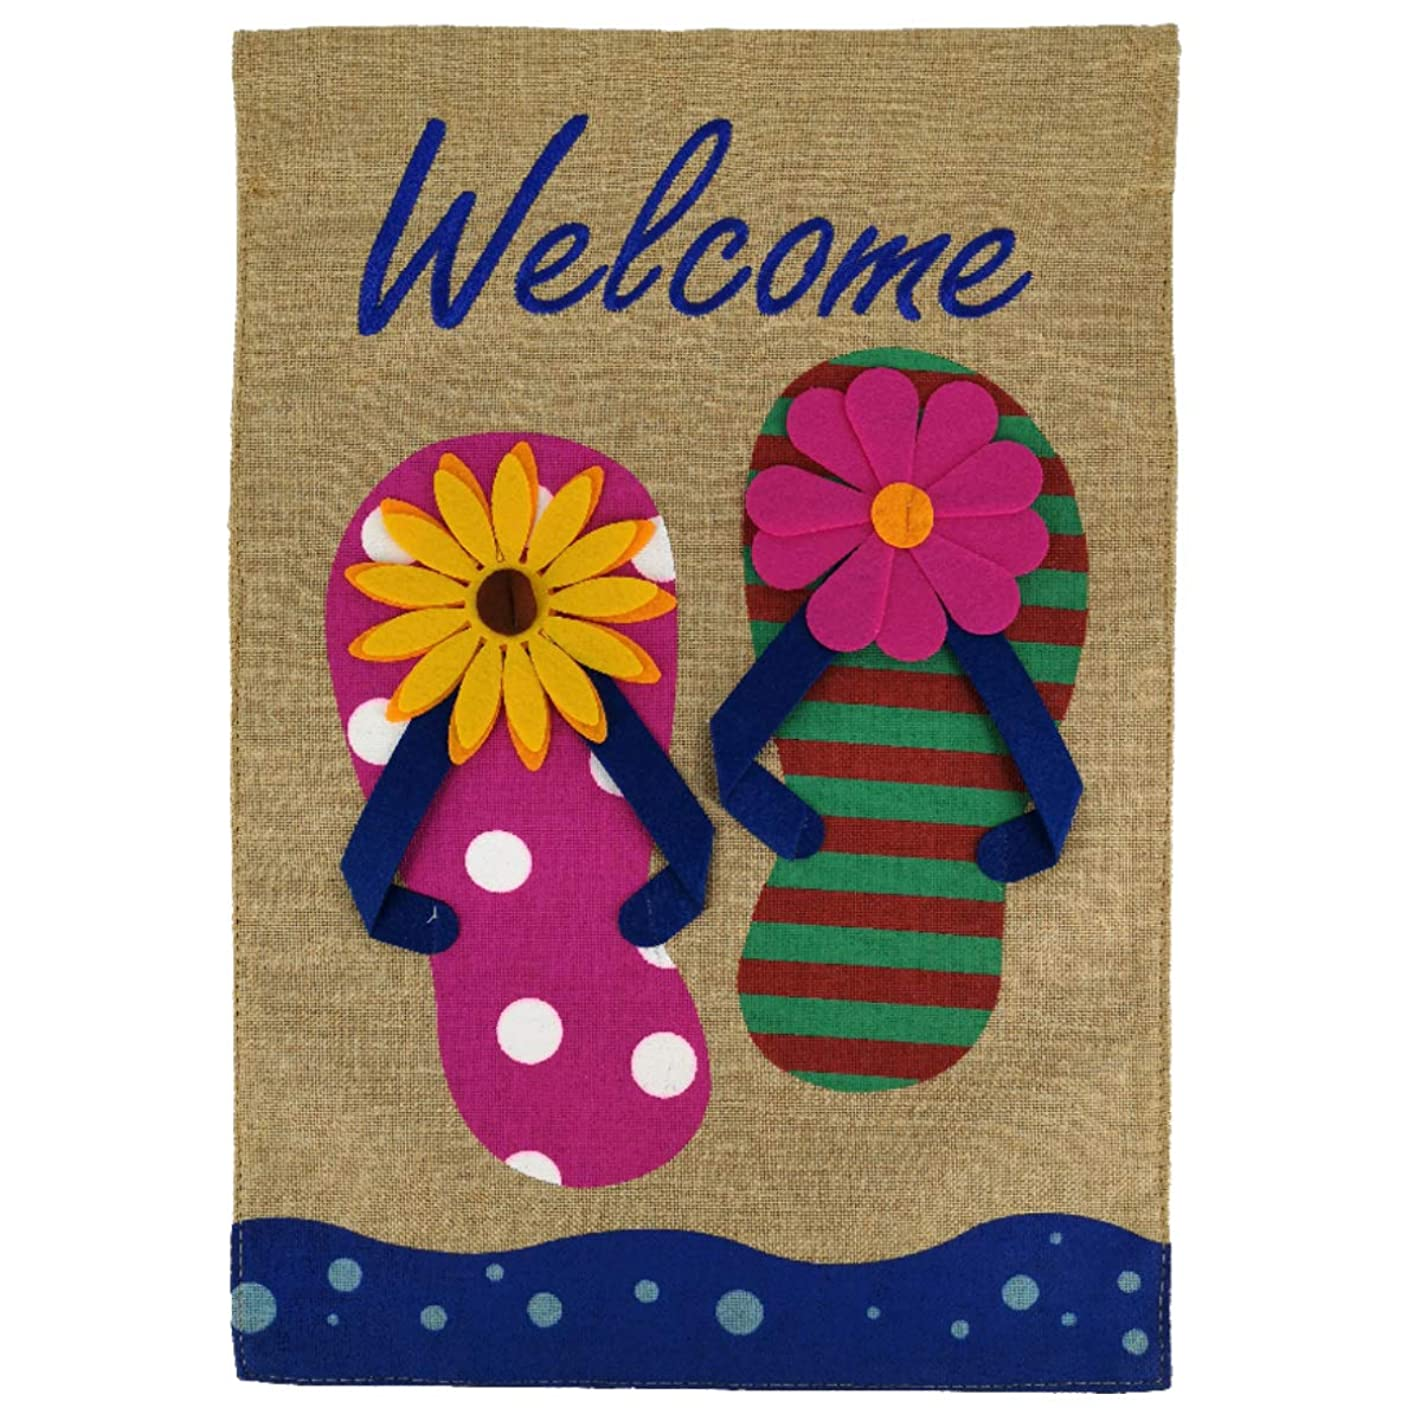 Texupday Welcome Summer Floral Flip Flop Burlap Summer Holiday Double Sided Garden Flag Beach Embroidered Outdoor Yard Flag 12